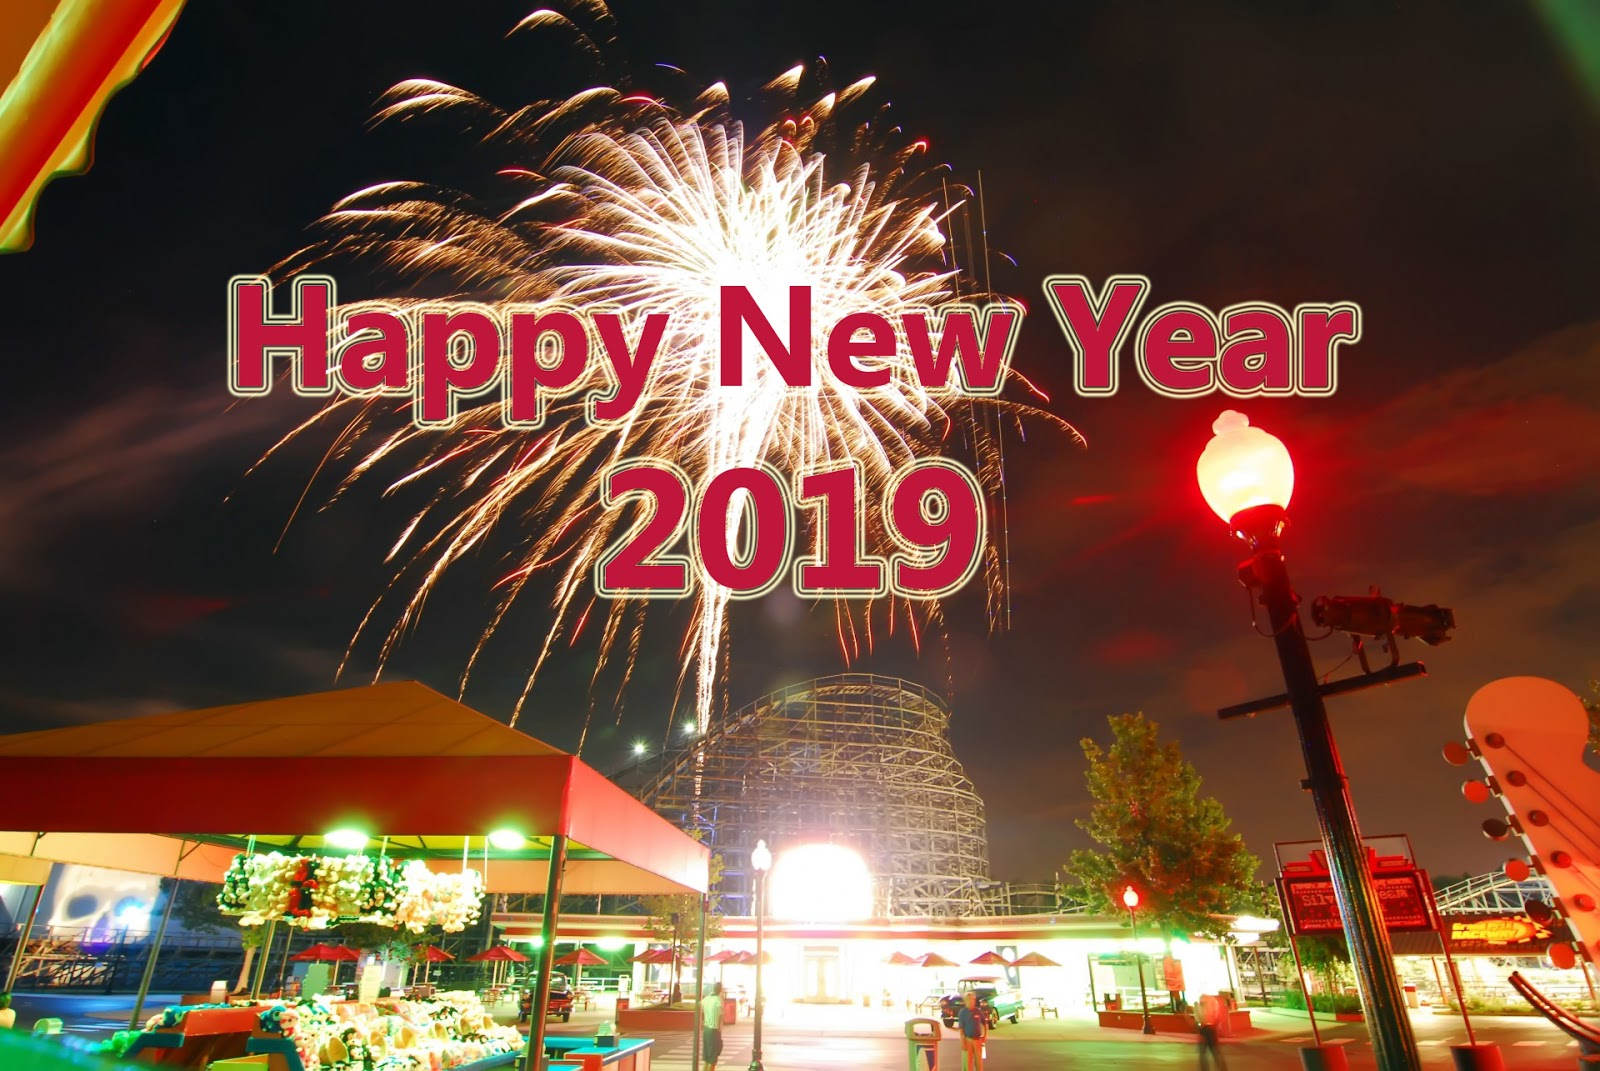 kuwait celebration happy new year 2019 wallpaper